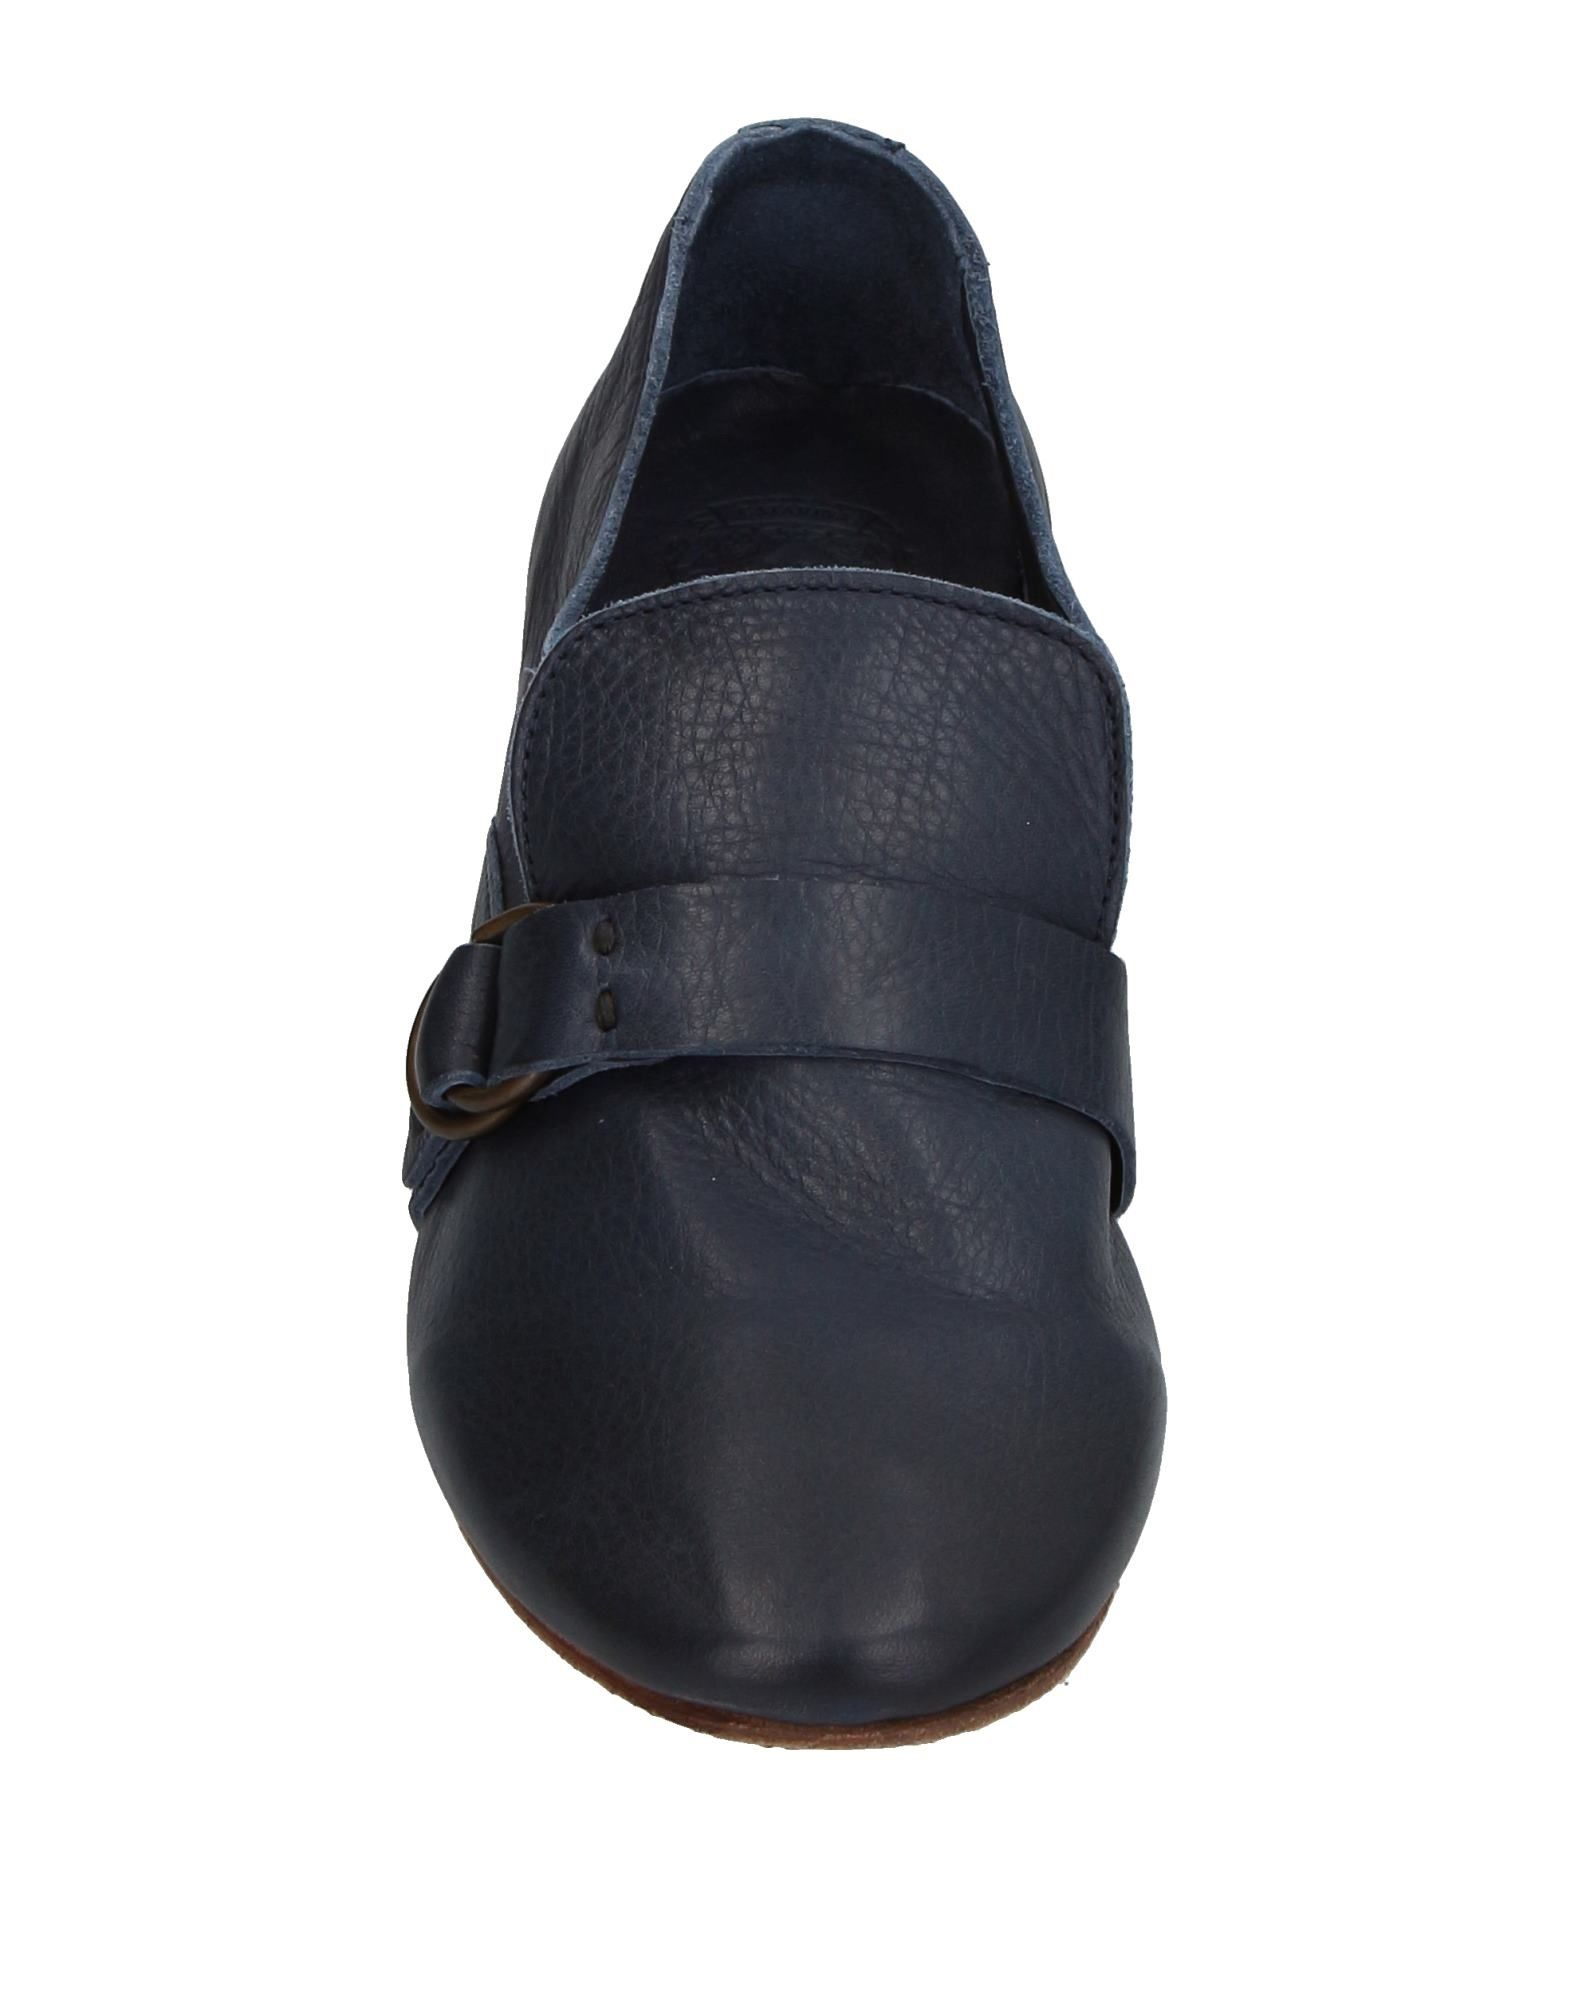 Mocassins Catarina Martins Femme - Mocassins Catarina Martins sur